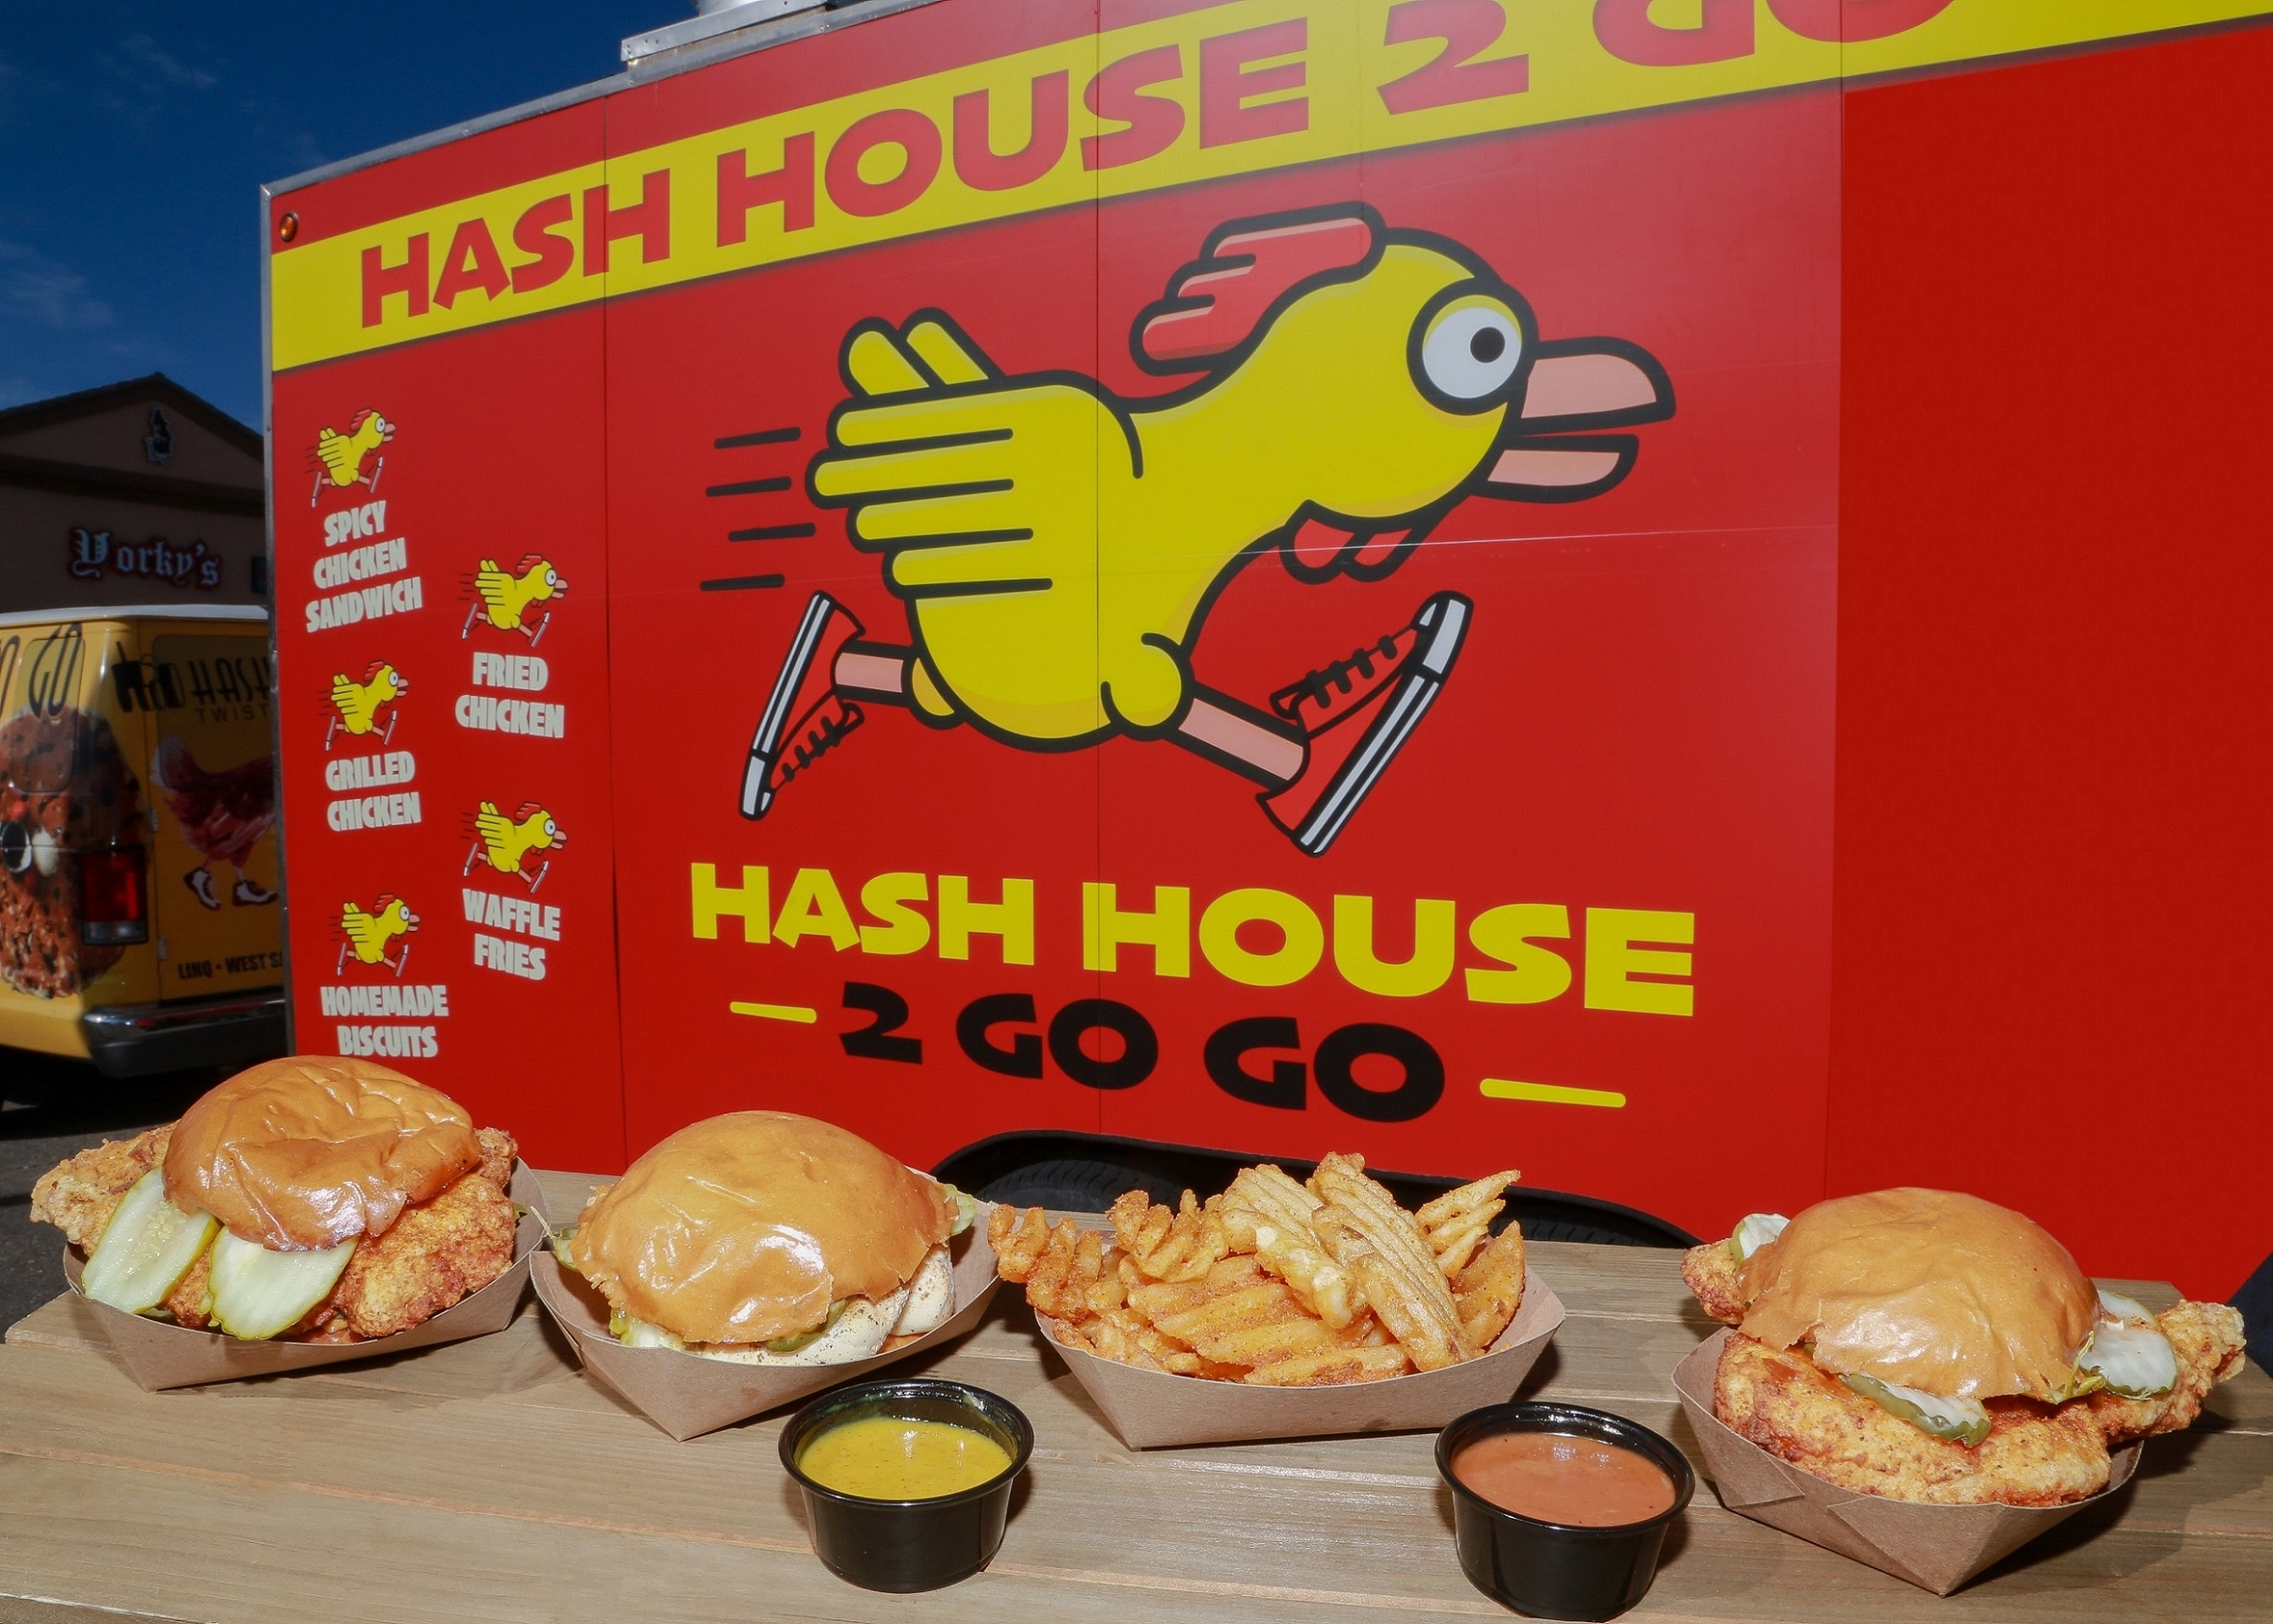 A food truck with a cheeky chicken on the side and four sandwiches on a table in front of it